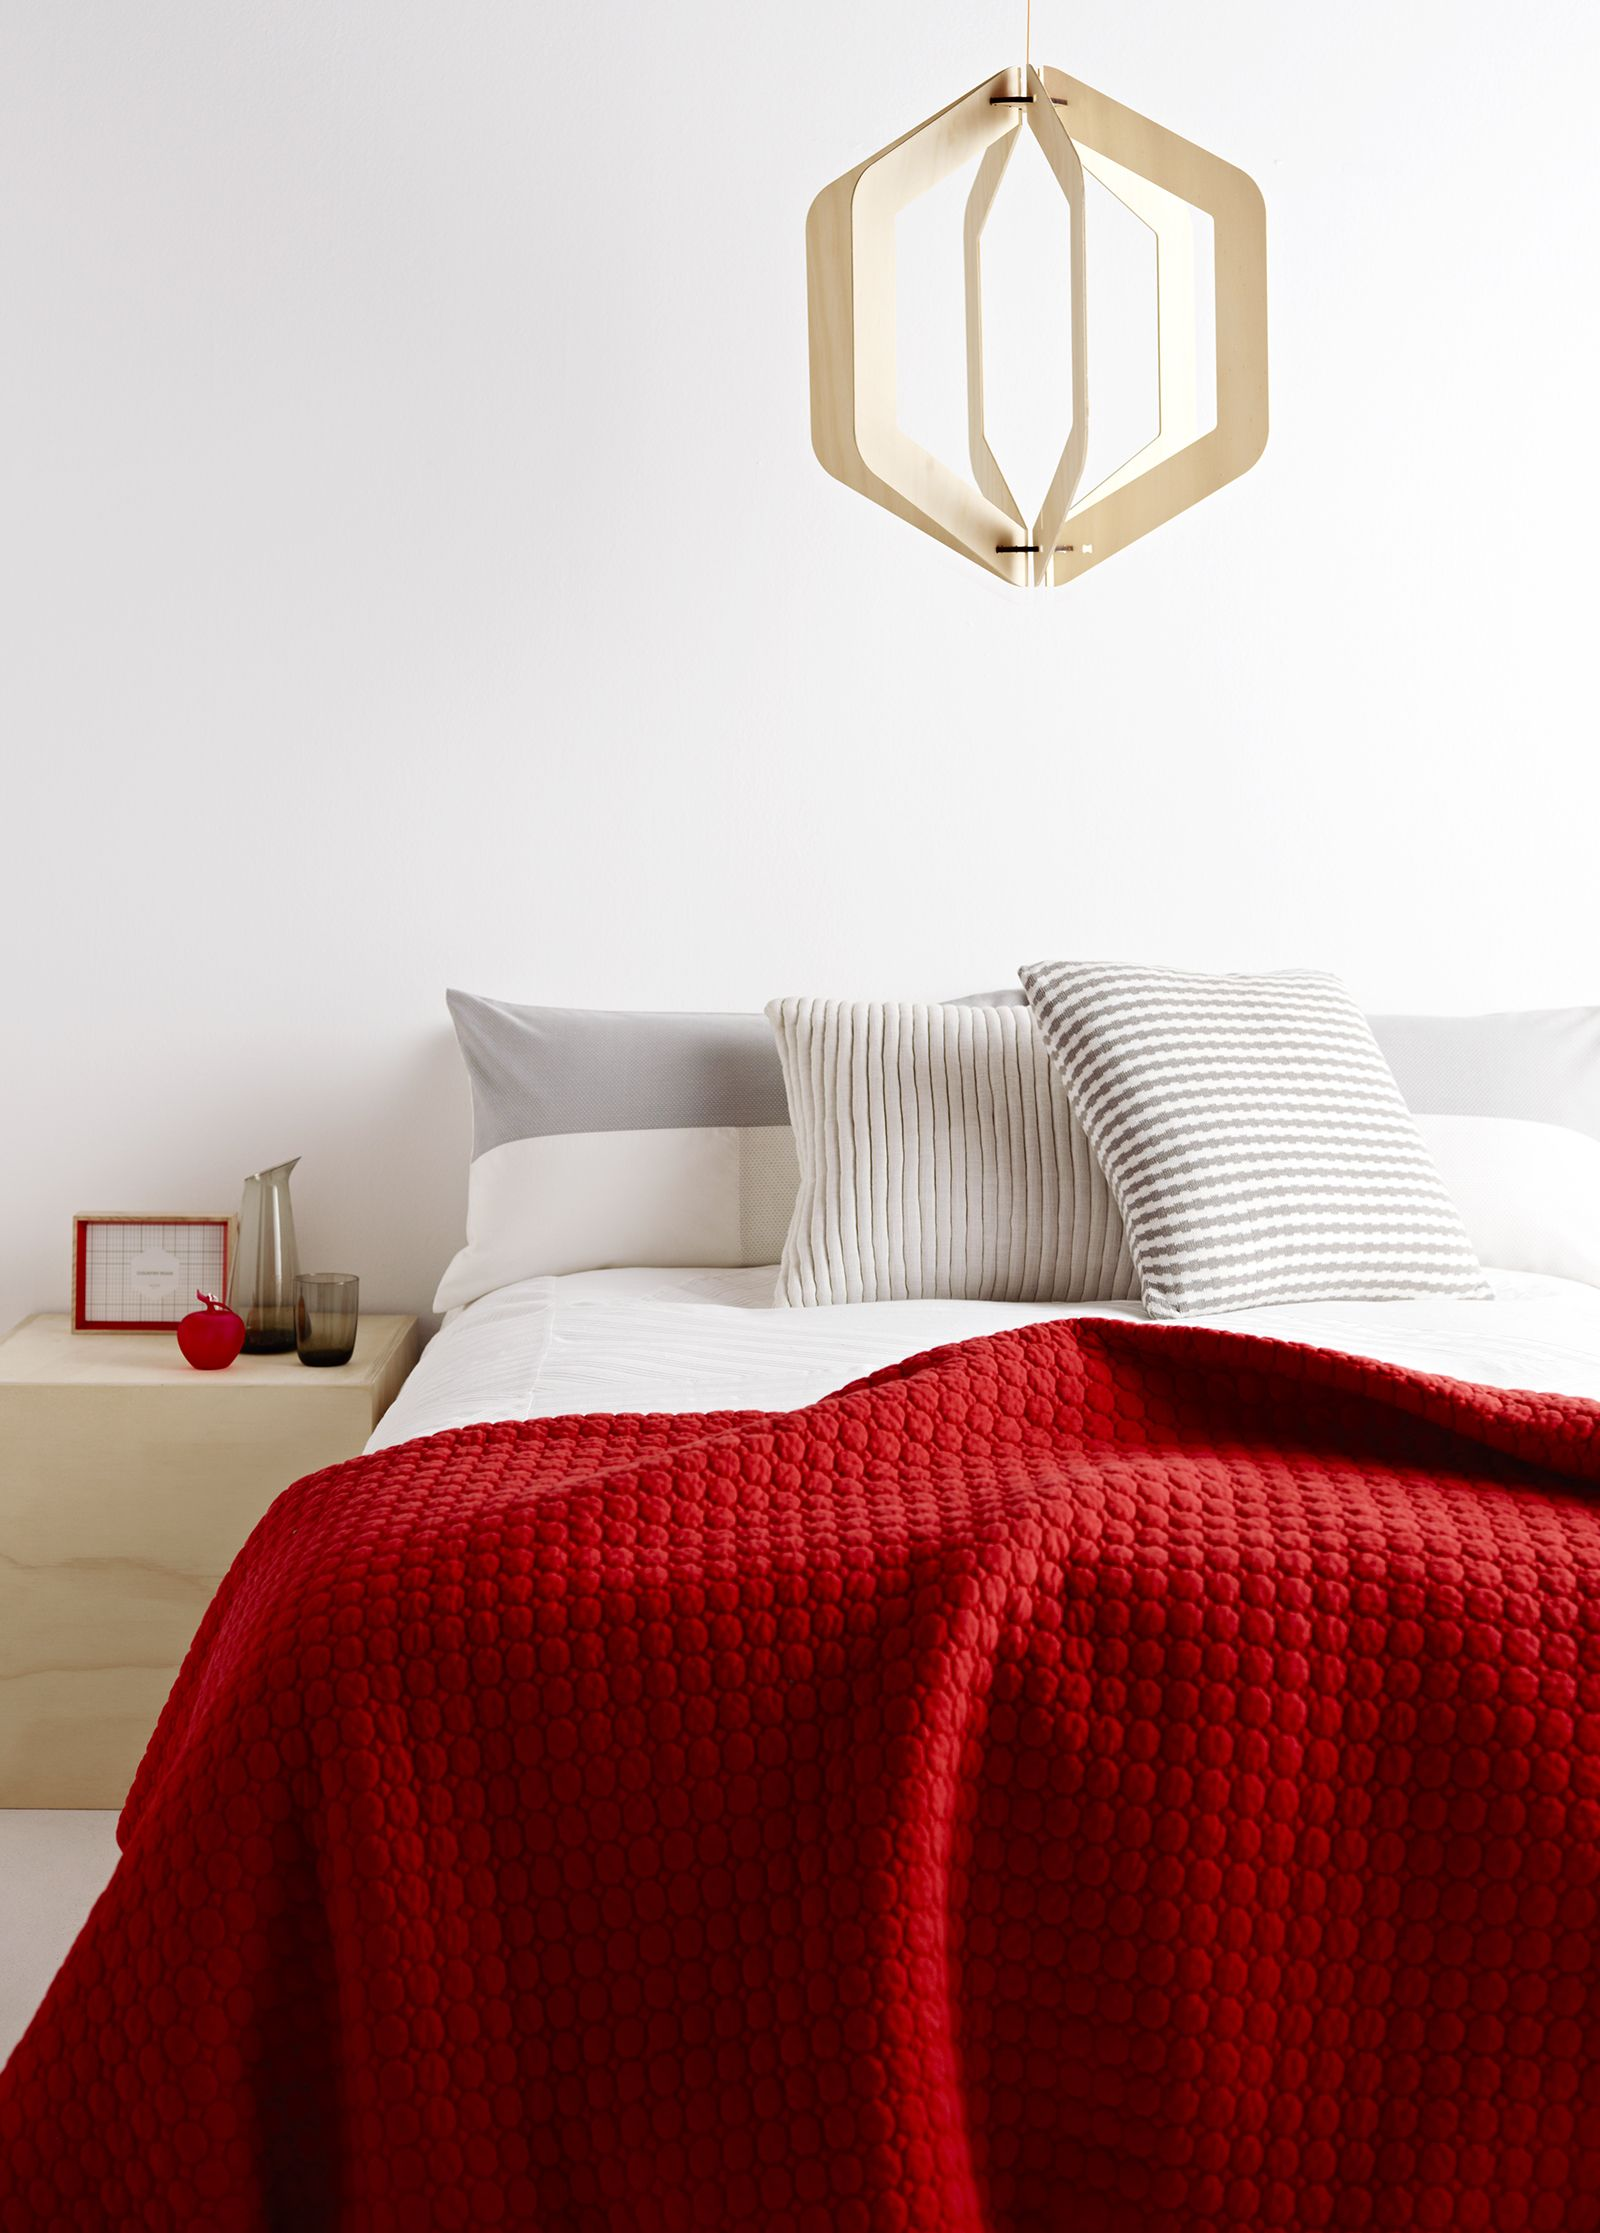 Via Country Road | Red and White Bedroom | Wooden Lamp